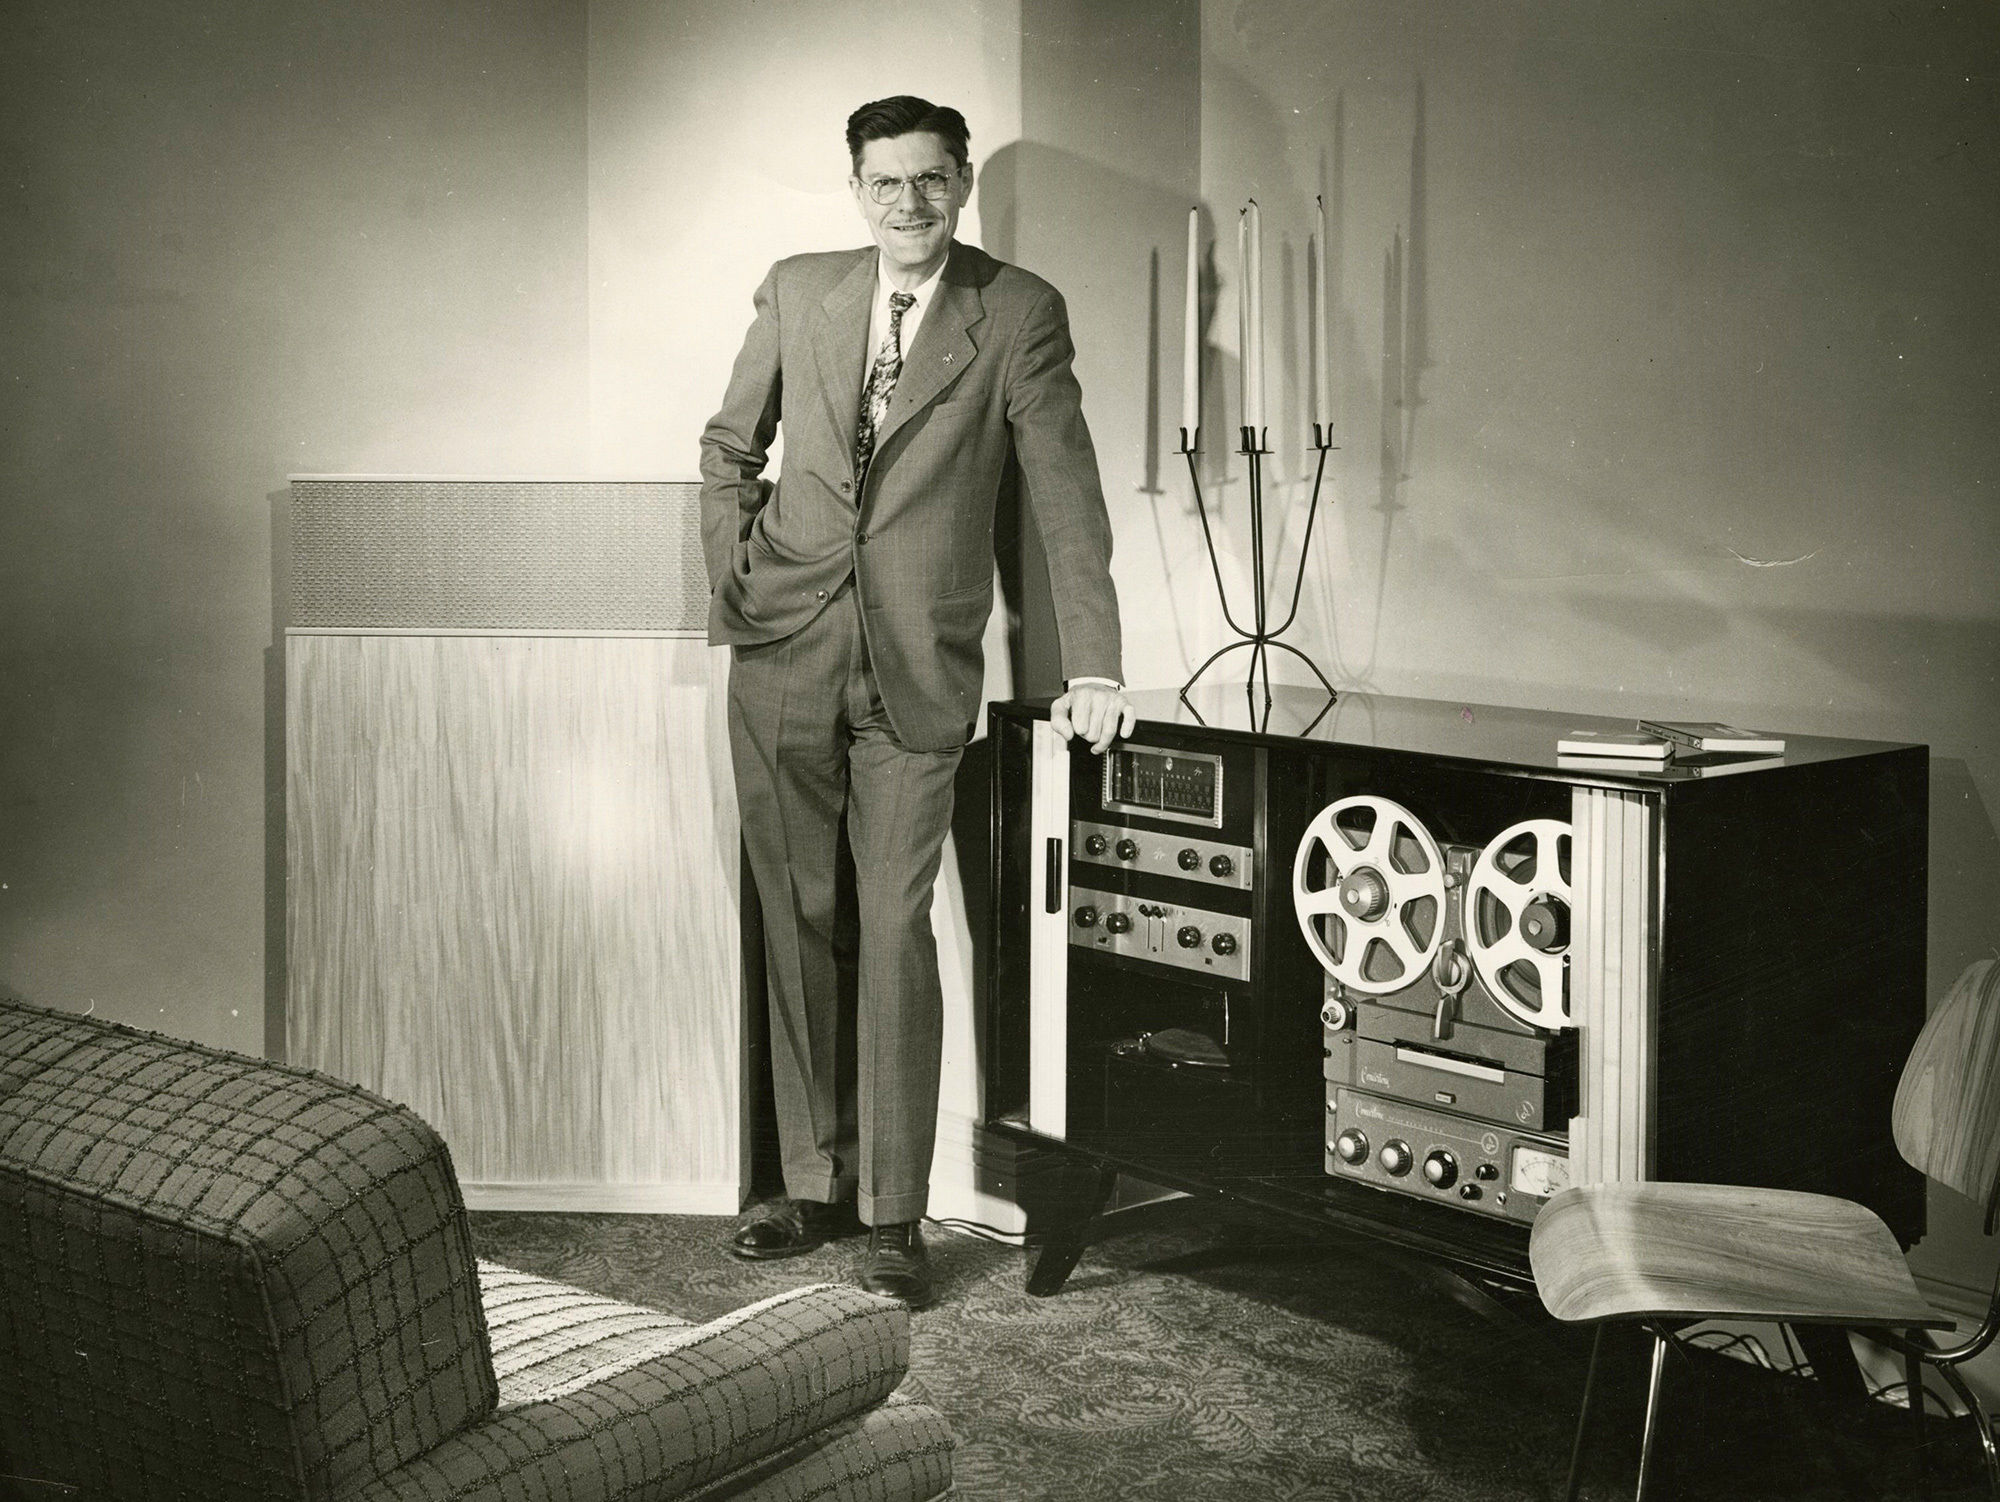 Man stands next to old speaker system (black and white)